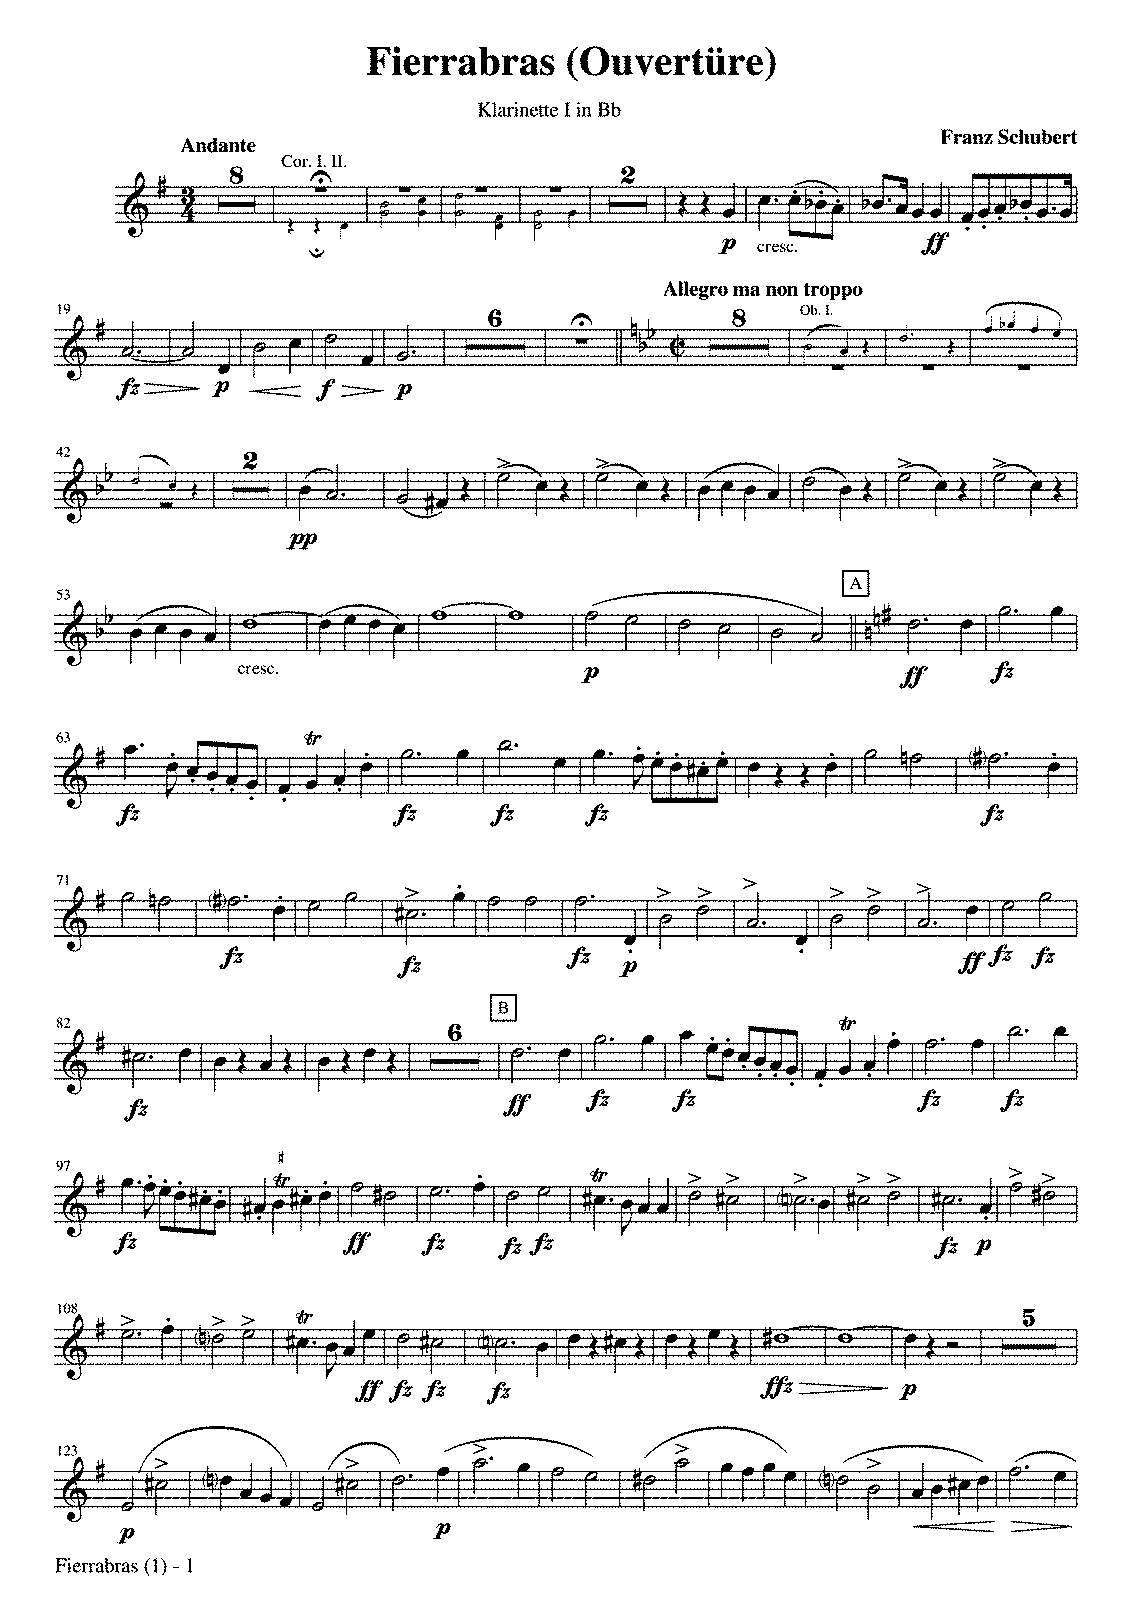 PMLP47619-Schubert Fierrabras Clarinet Parts Bb.pdf